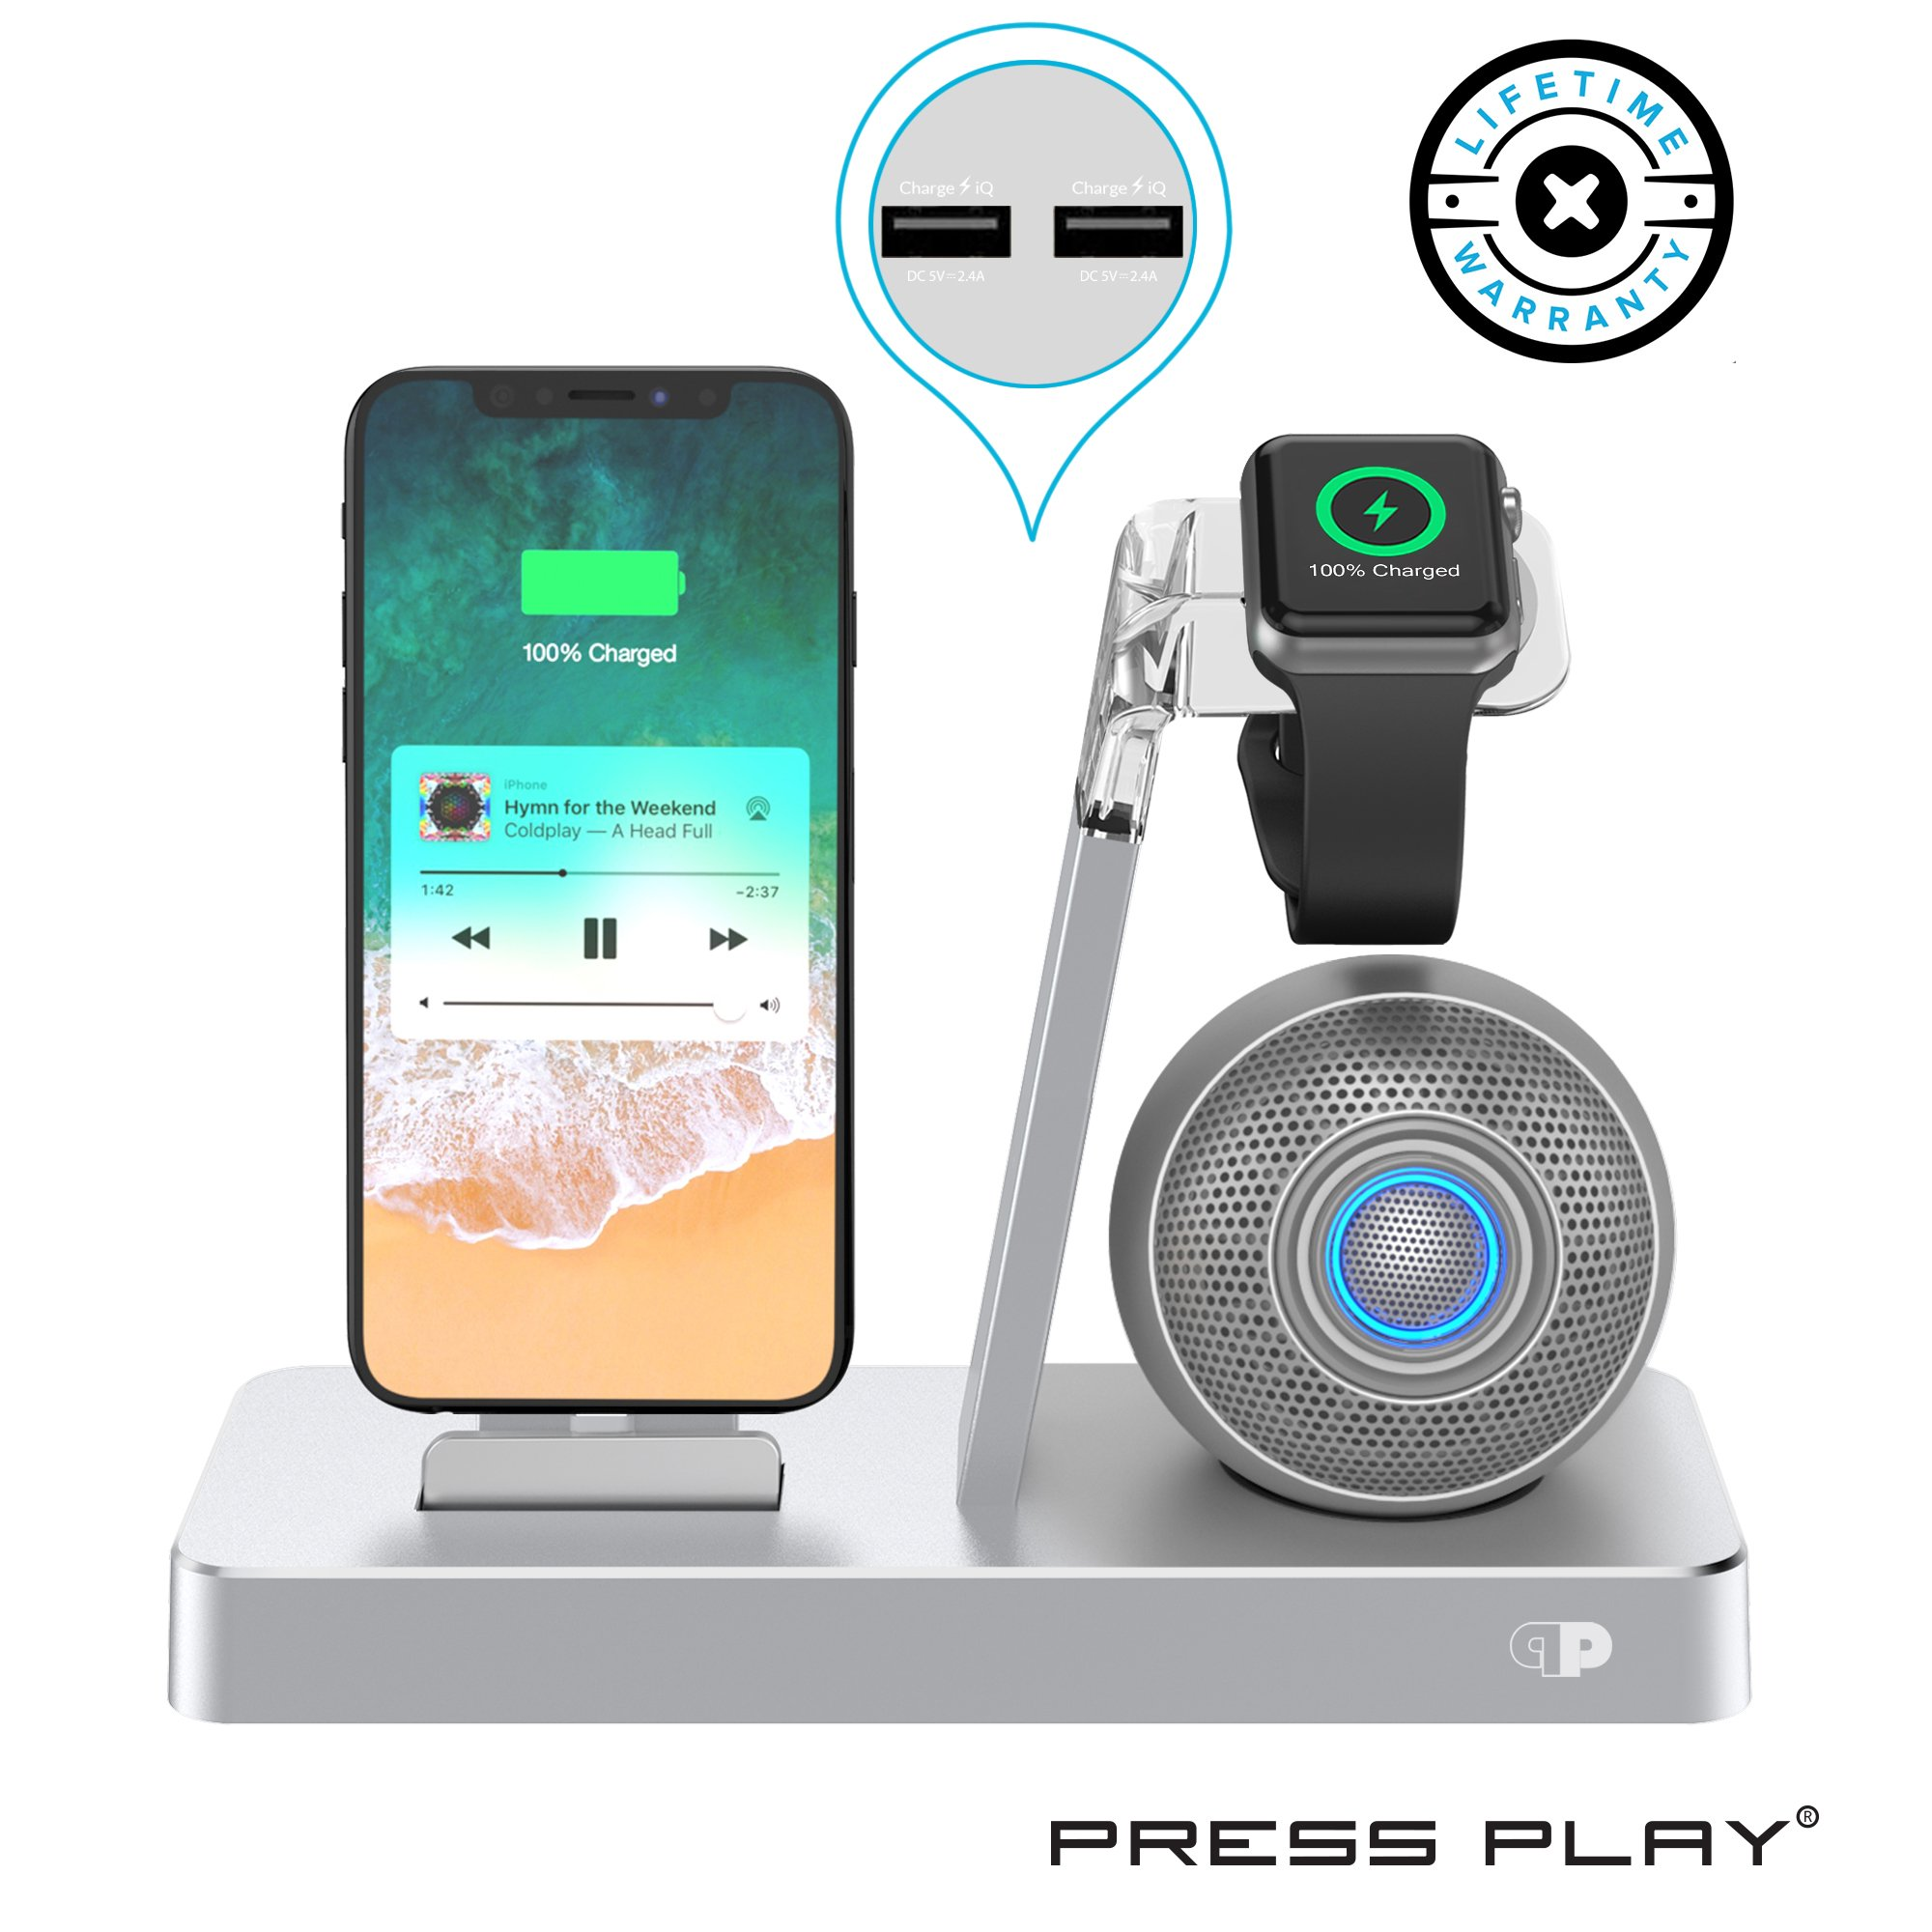 Press Play ONE Dock Beat [Apple Certified] Power Station + Wireless Speaker Dock, Stand & Charger for Apple Watch Smart Watch, iPhone, iPad & iPod w/Original Lightning Connector